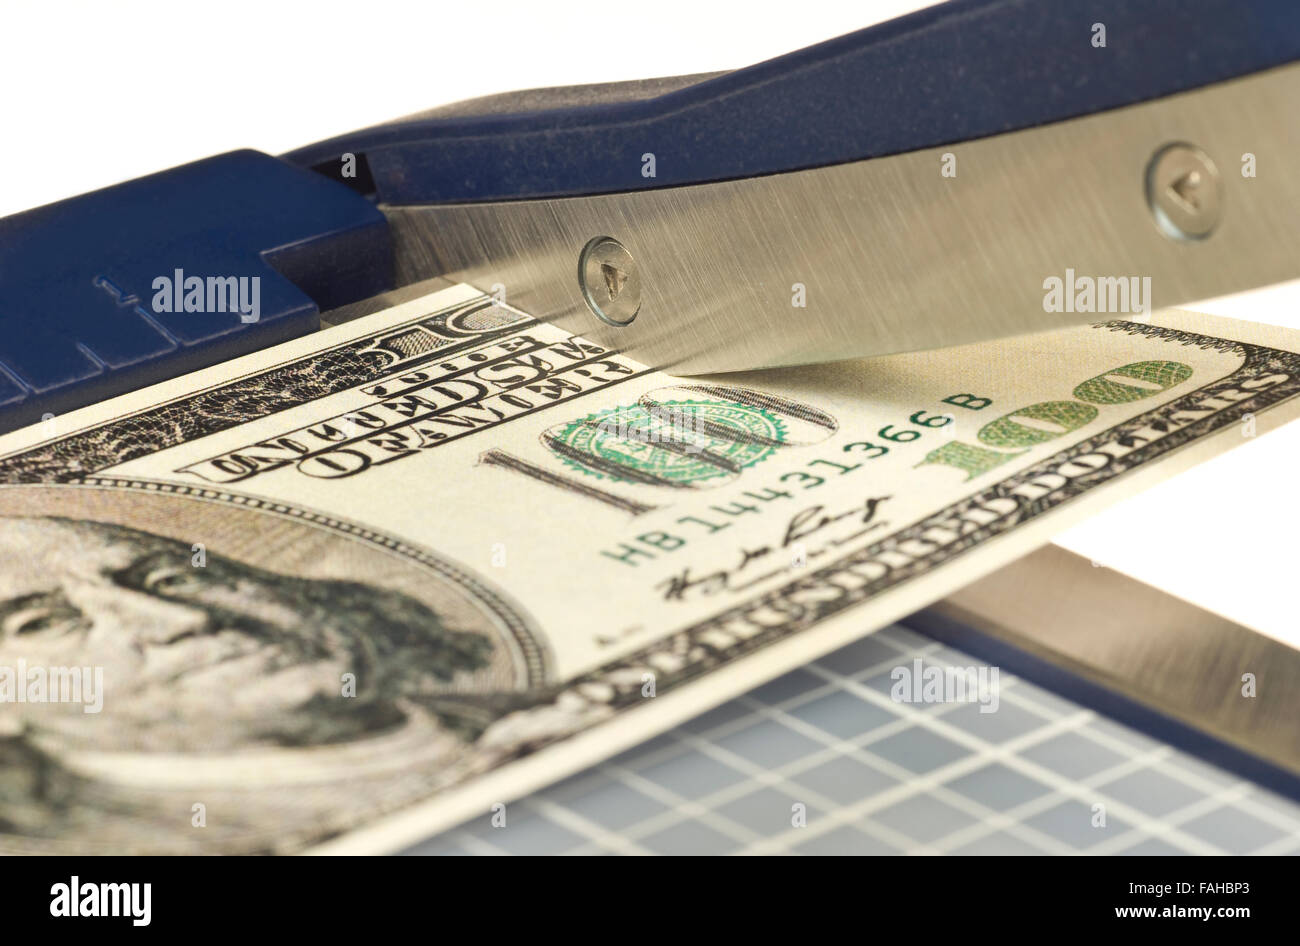 Paper Cutter Cutting off a piece of a One hundred dollar bill as an Inflation Illustration - Stock Image